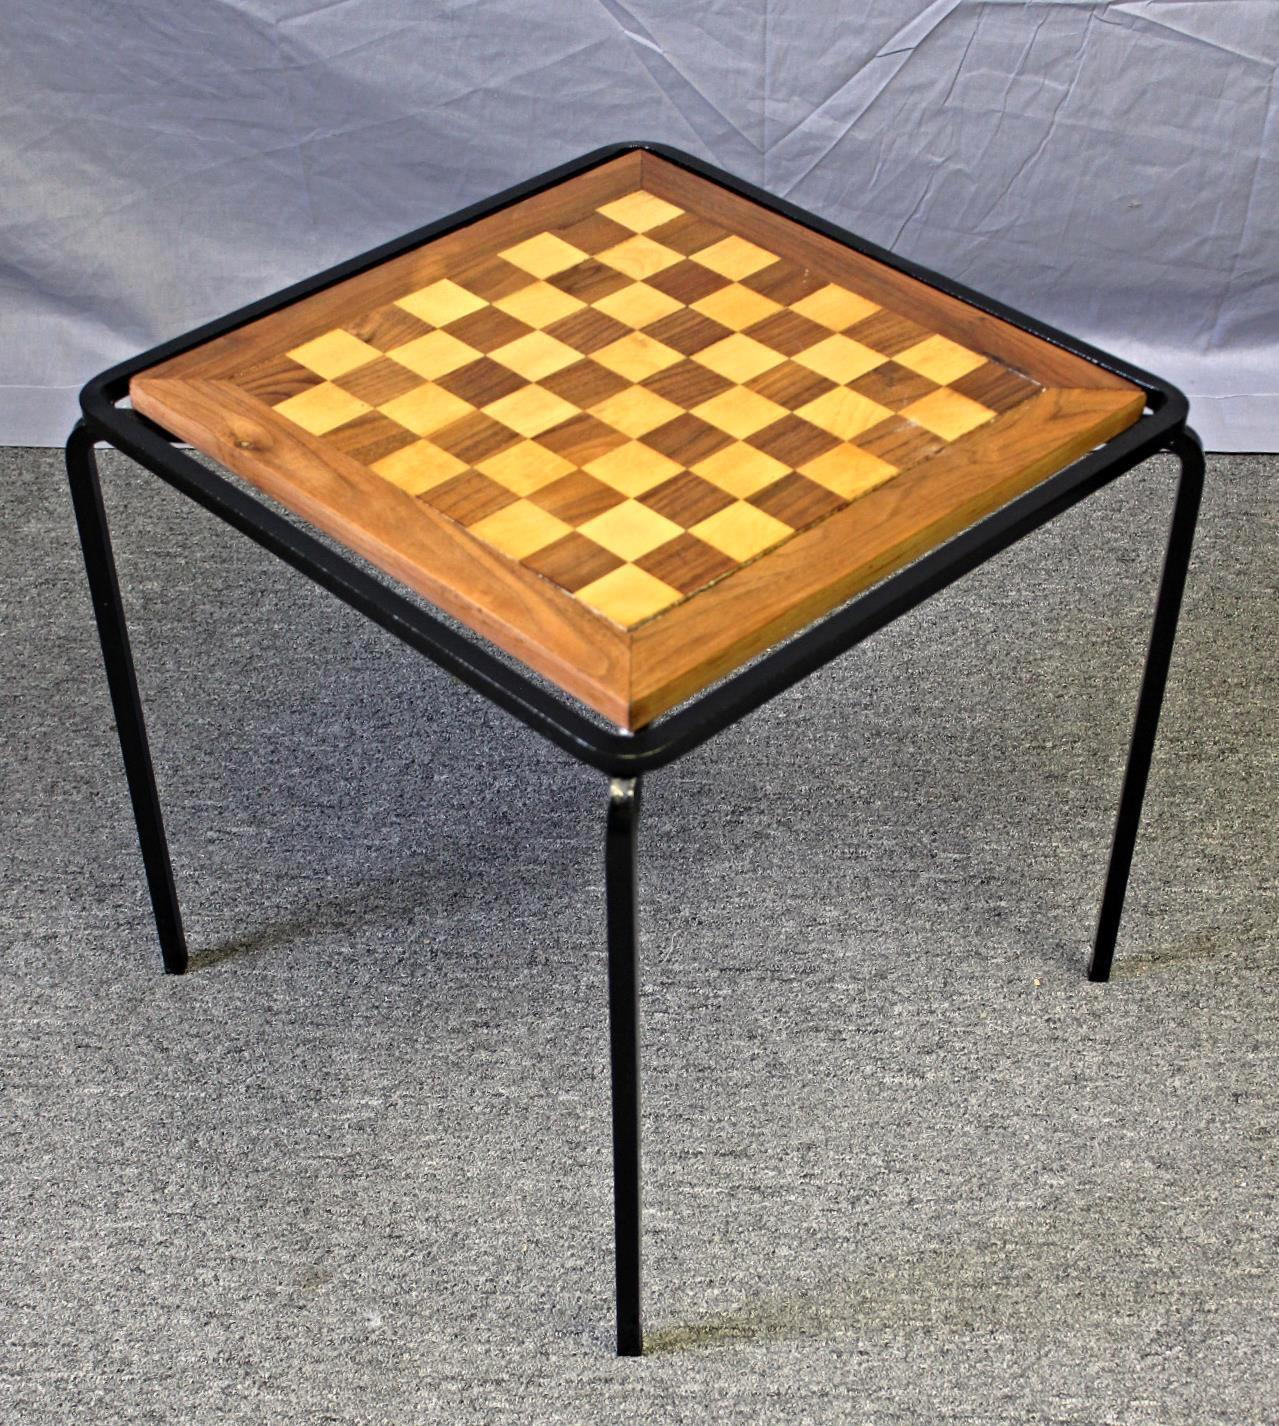 This Elegant Parquetry Inlaid And Iron Frame Chess/checkers Game Table Is A  Real Beauty